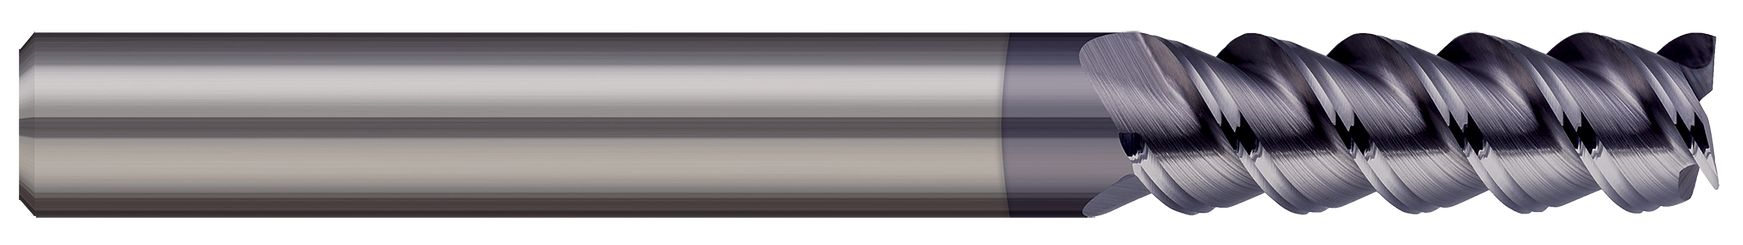 End Mills for Steels & High Temperature Alloys - Square - 3 & 4 Flute